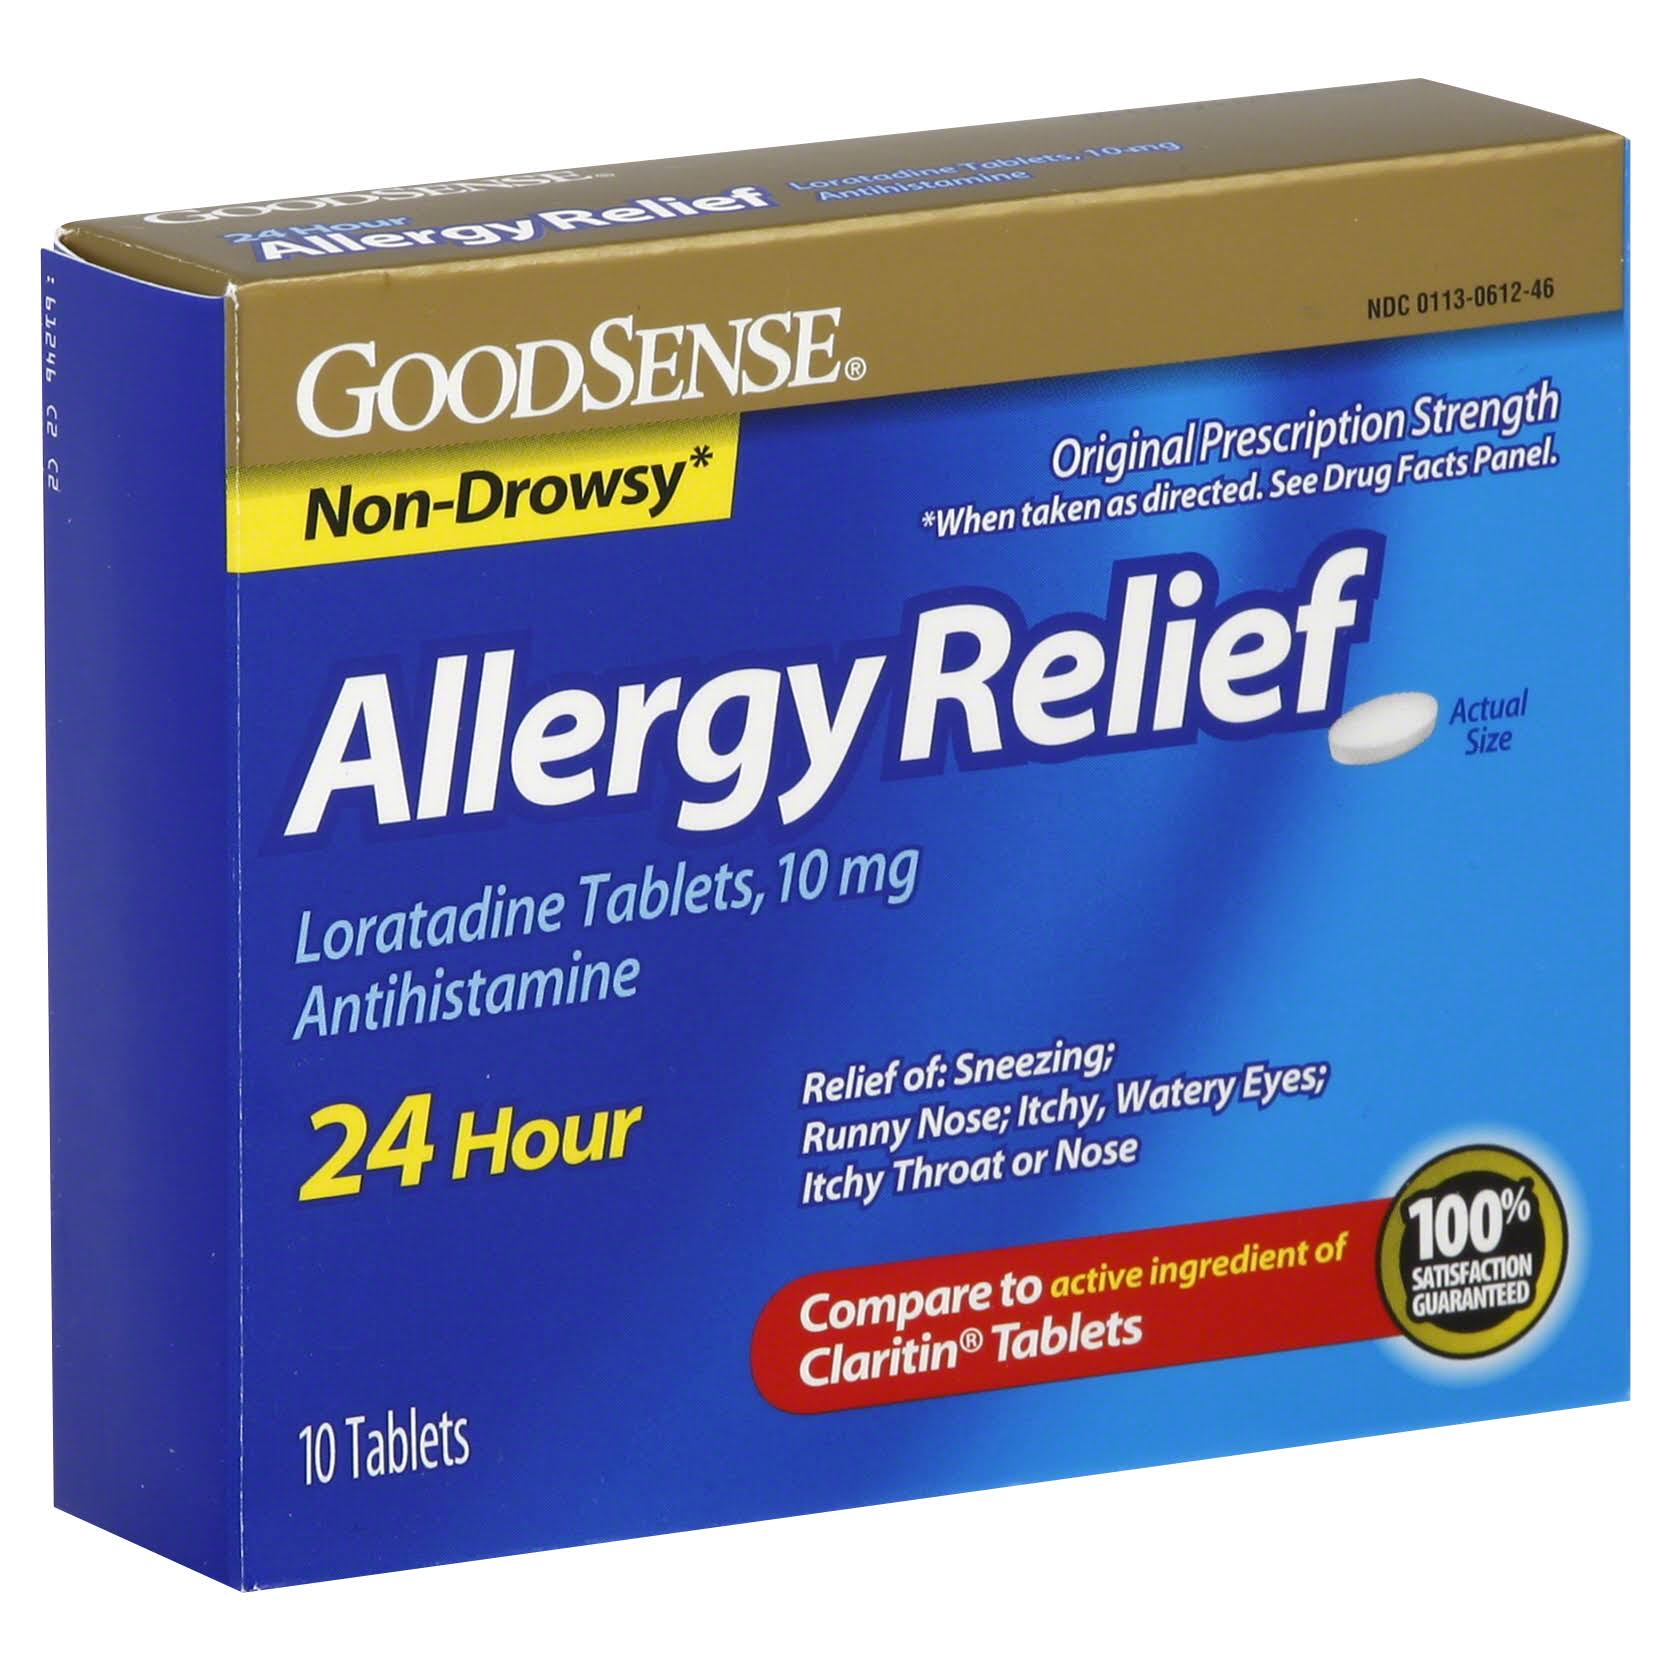 GoodSense Non Drowsy Allergy Relief Loratadine Antihistamine - 10 tablets